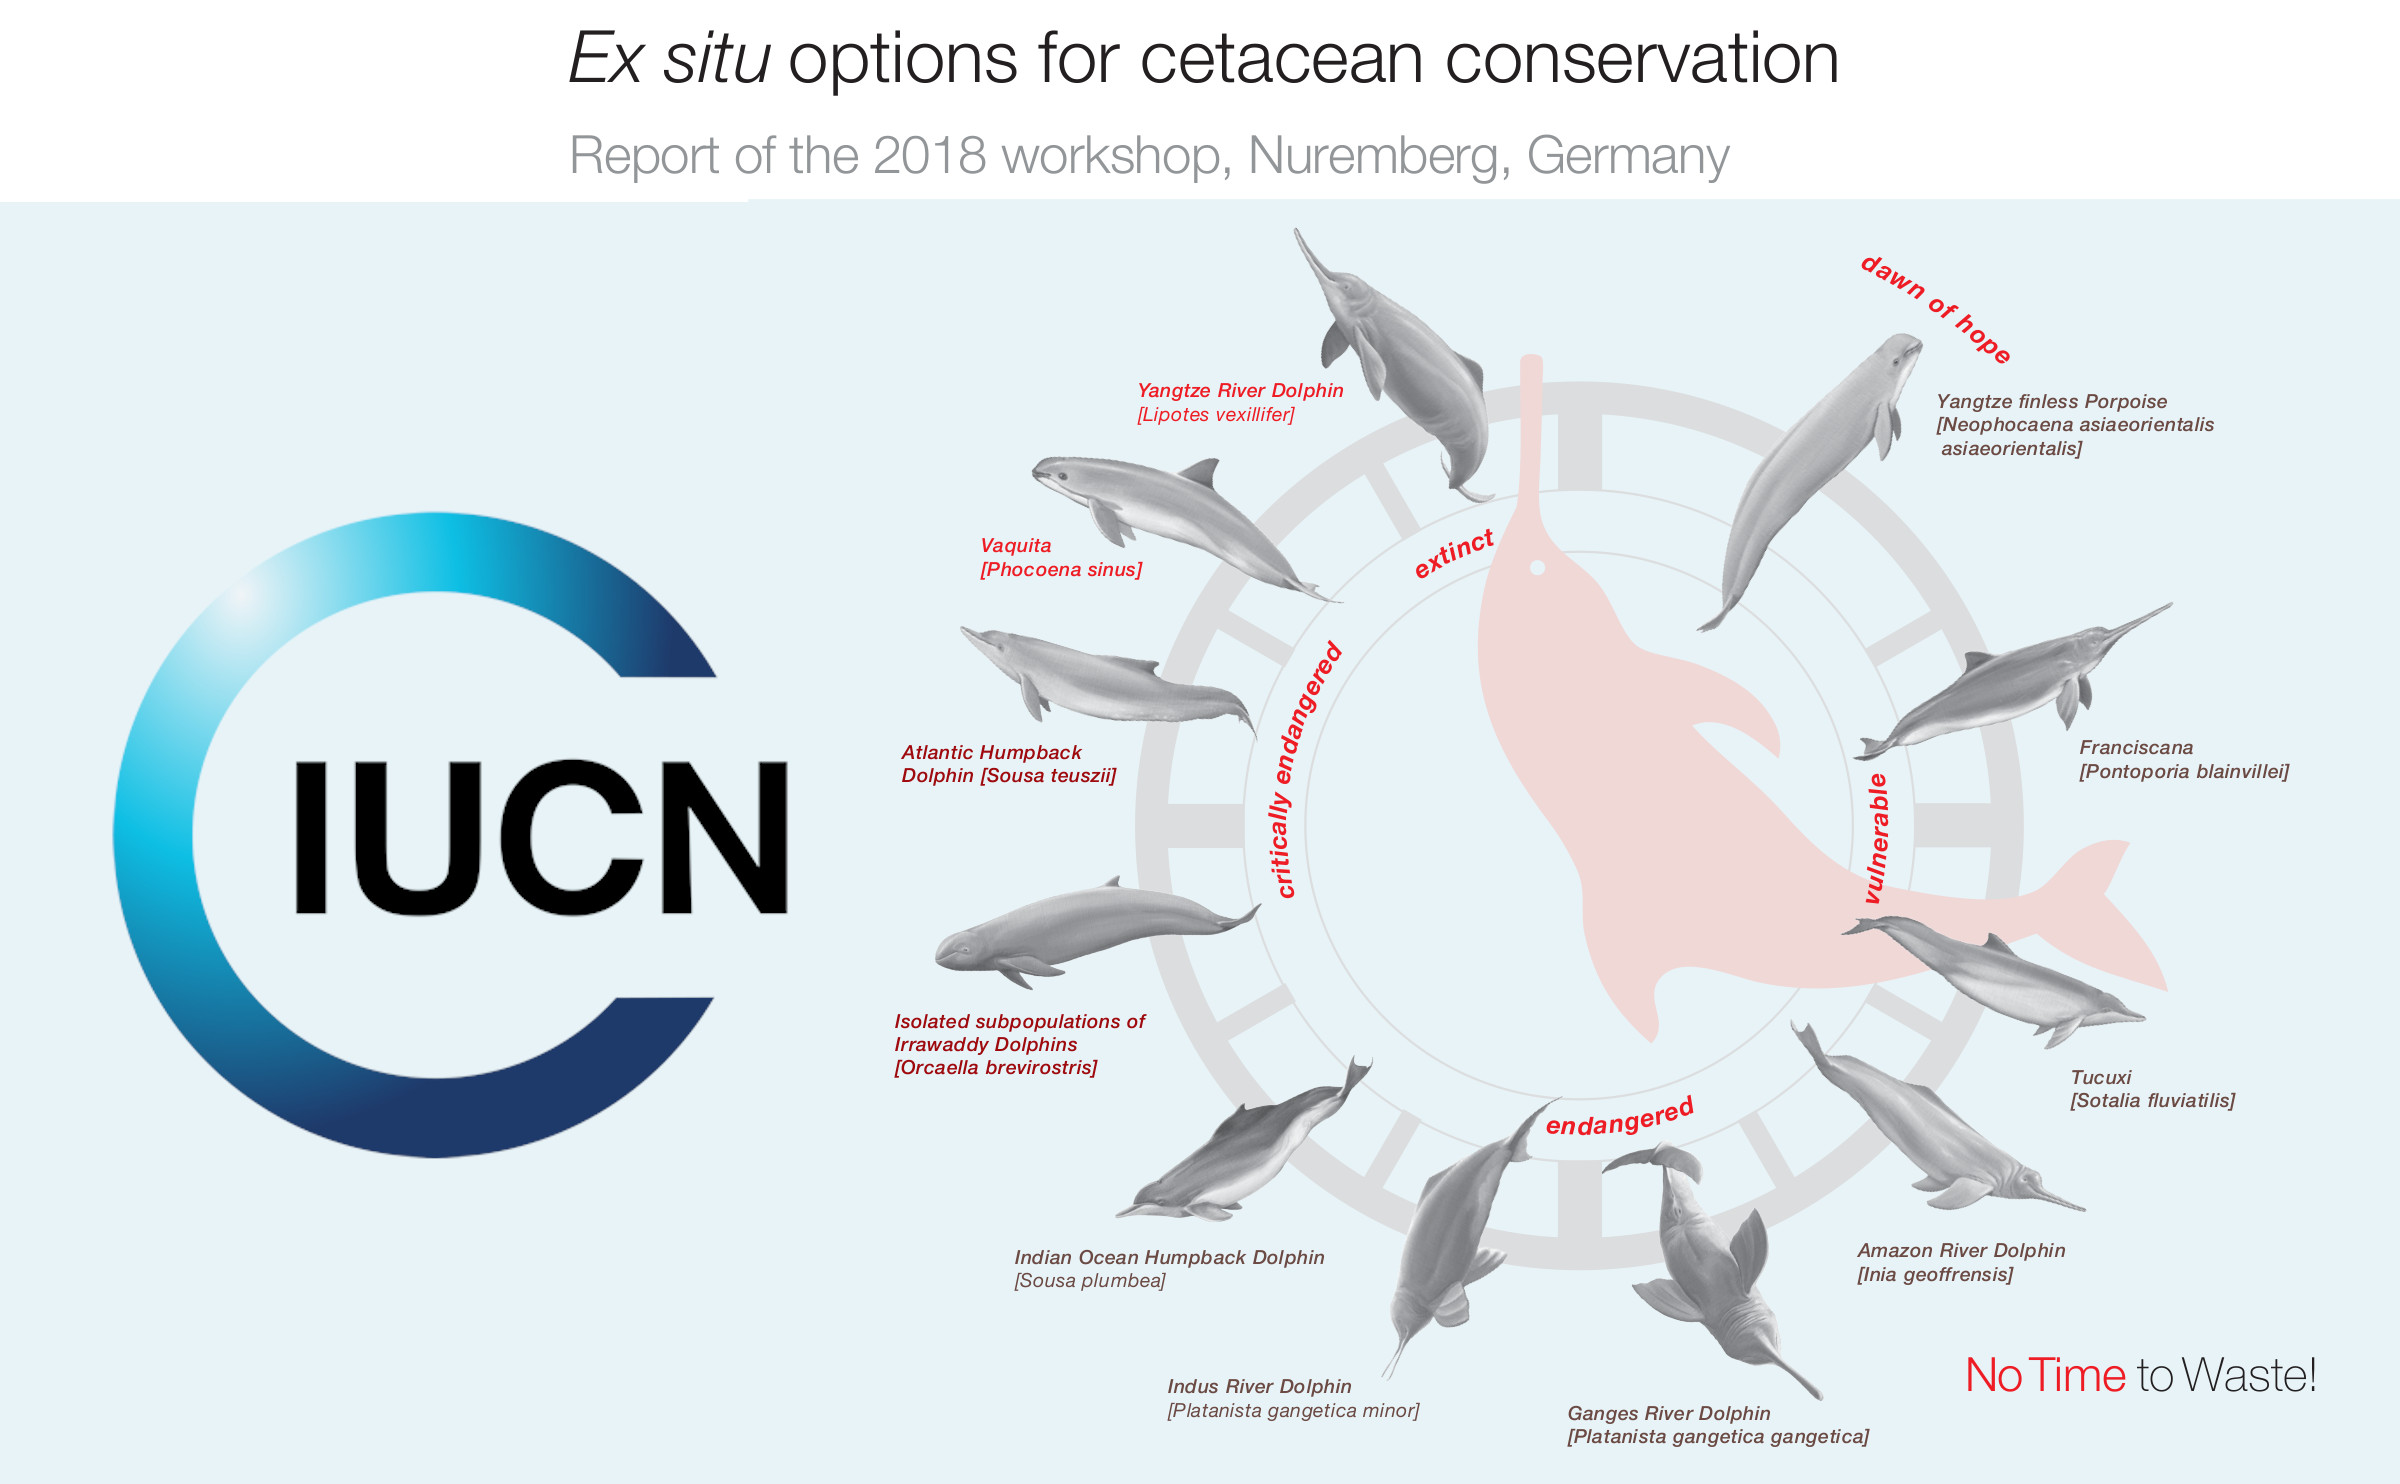 Loro Parque applauds the IUCN report, which confirms  that captive breeding is the hope for the salvation of many cetacean species